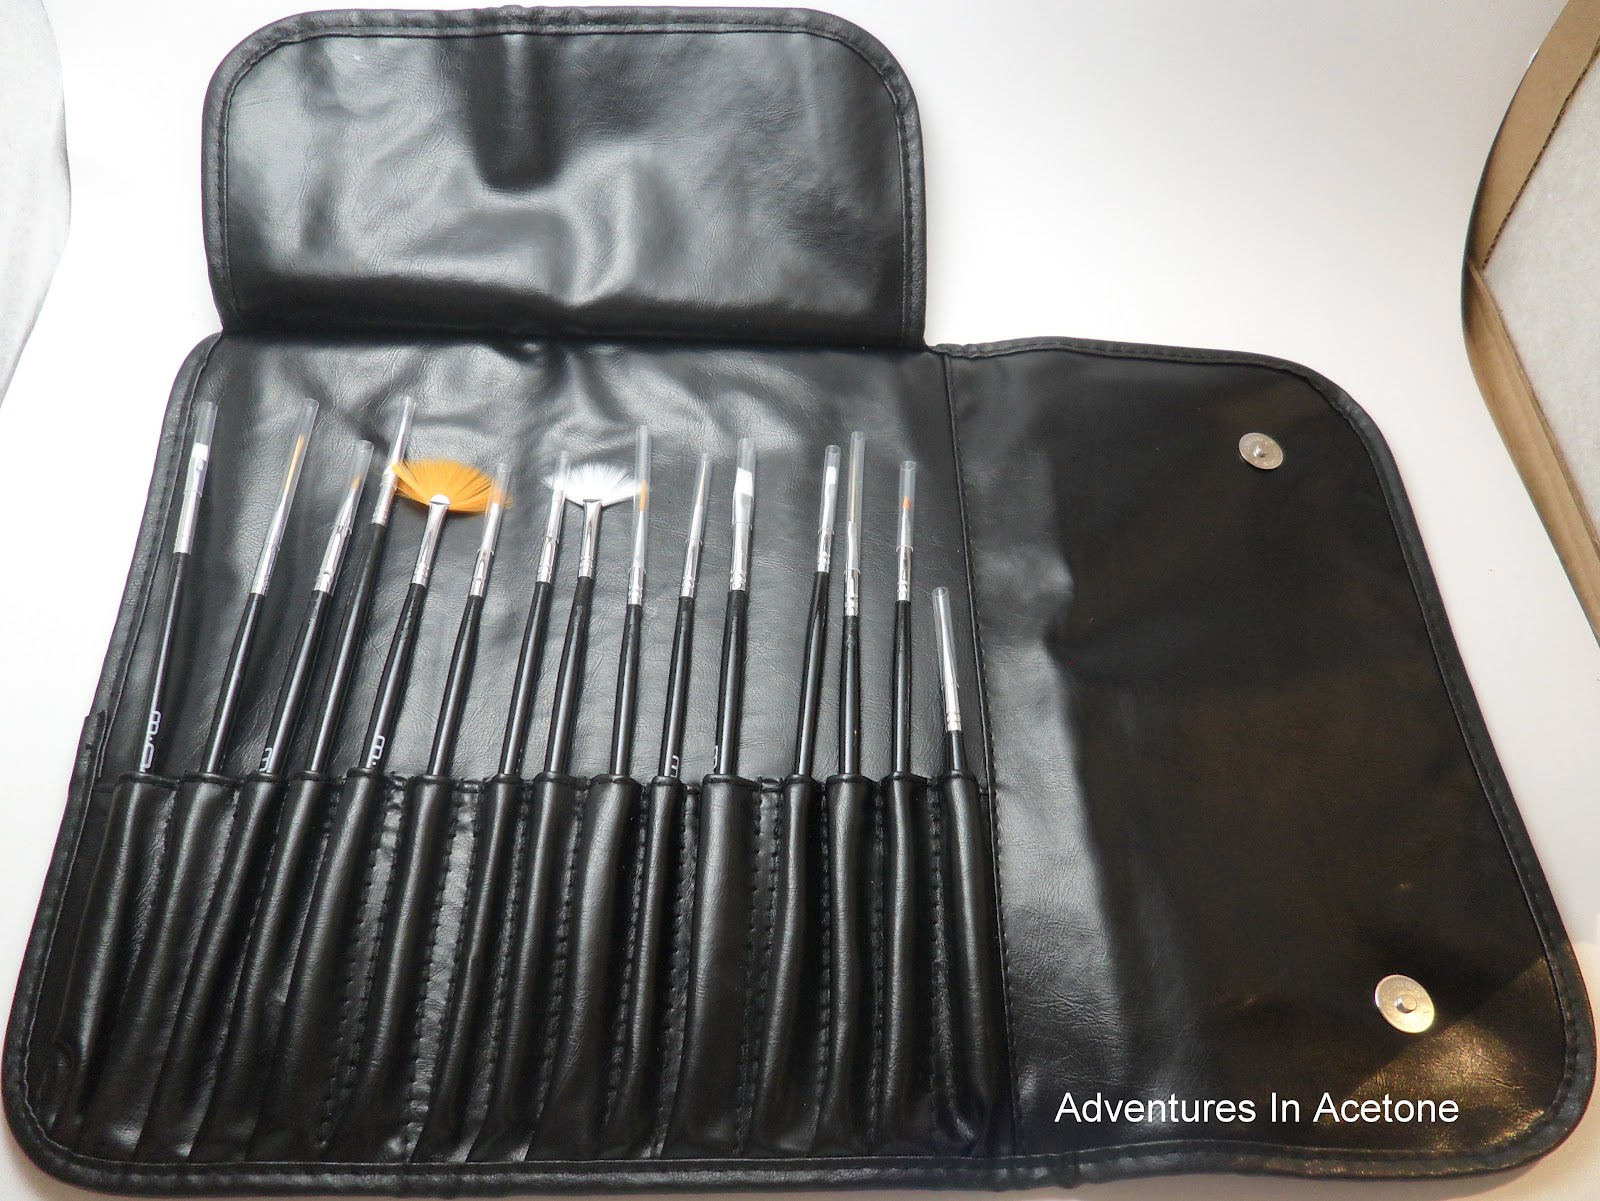 MASH Nail Art Brush Set Review! - Adventures In Acetone